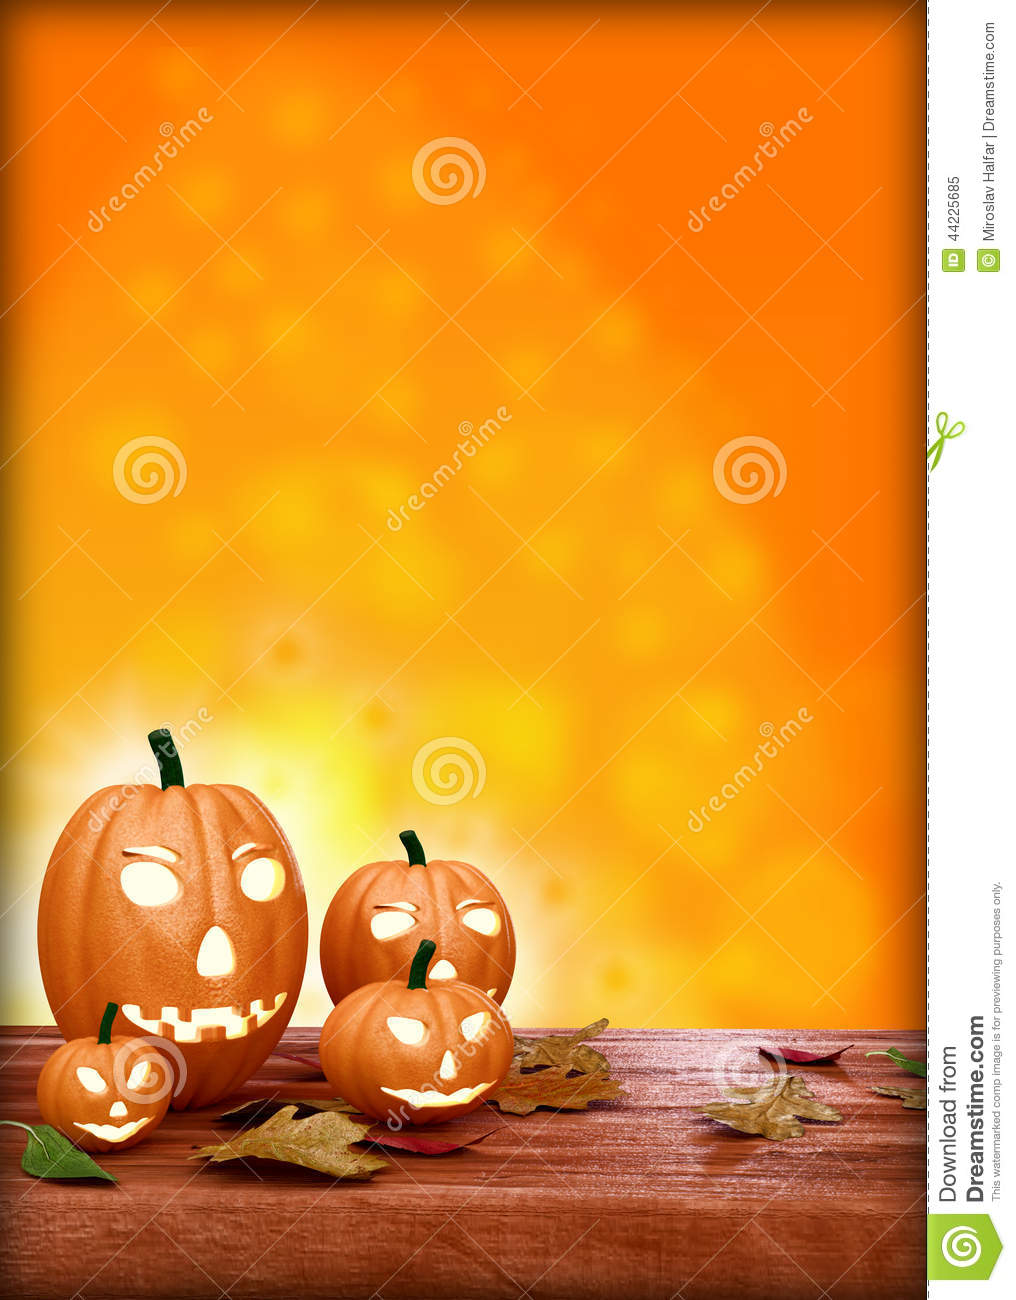 Halloween flyer design template with pumpkin stock illustration halloween flyer design template with pumpkin royalty free illustration saigontimesfo